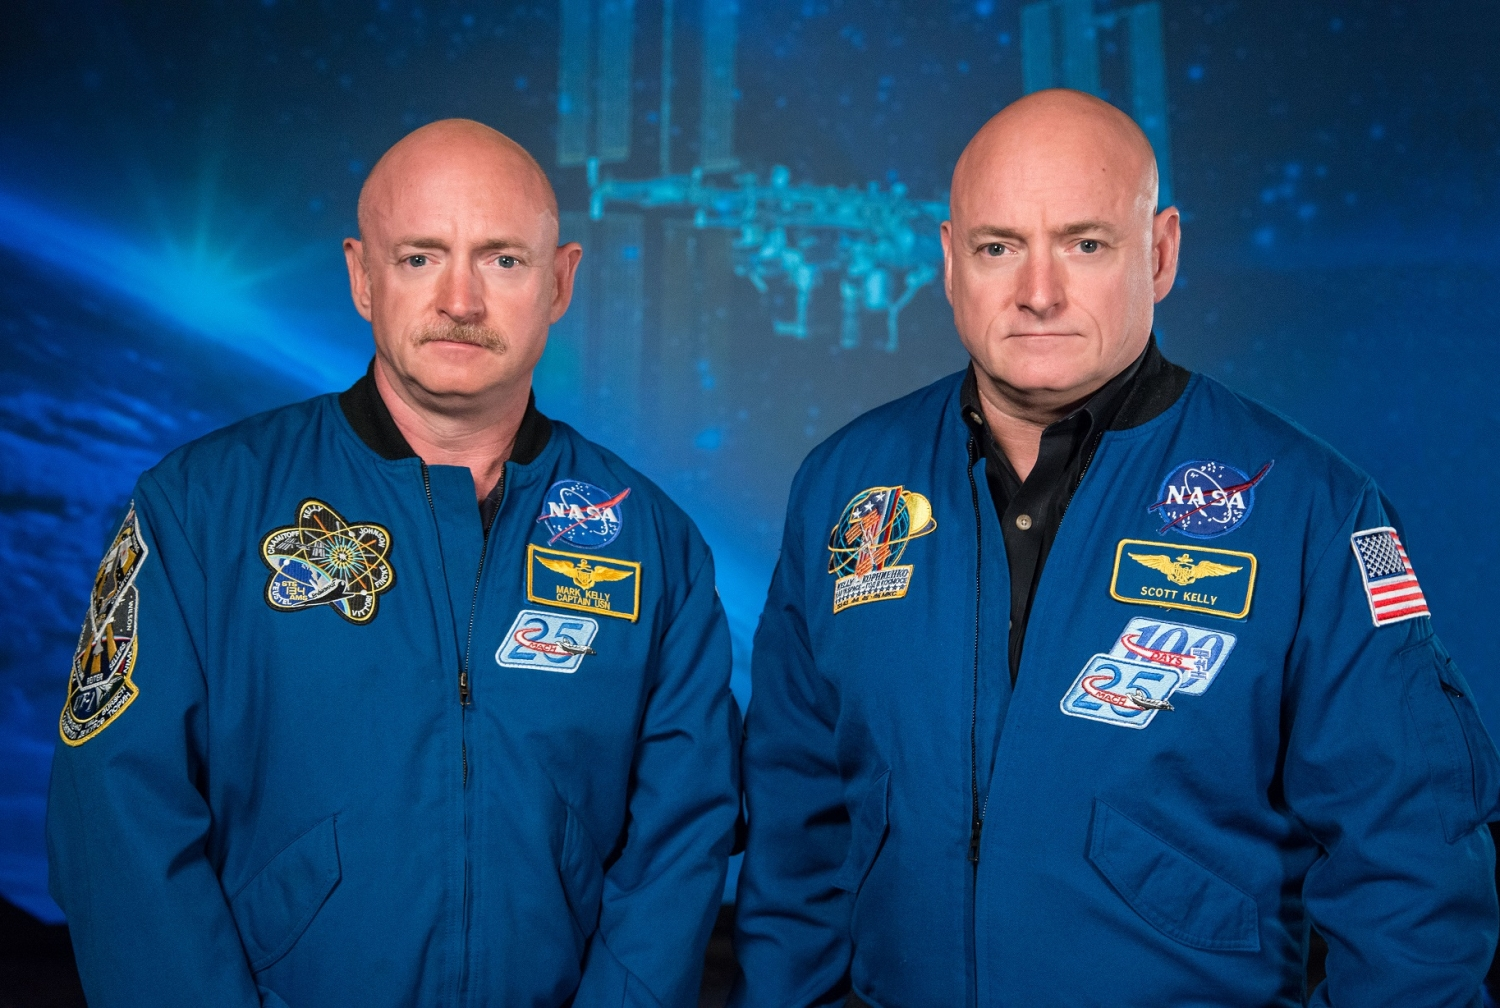 Mark Kelly (left) and Scott Kelly. Credit: Robert Markowitz/NASA